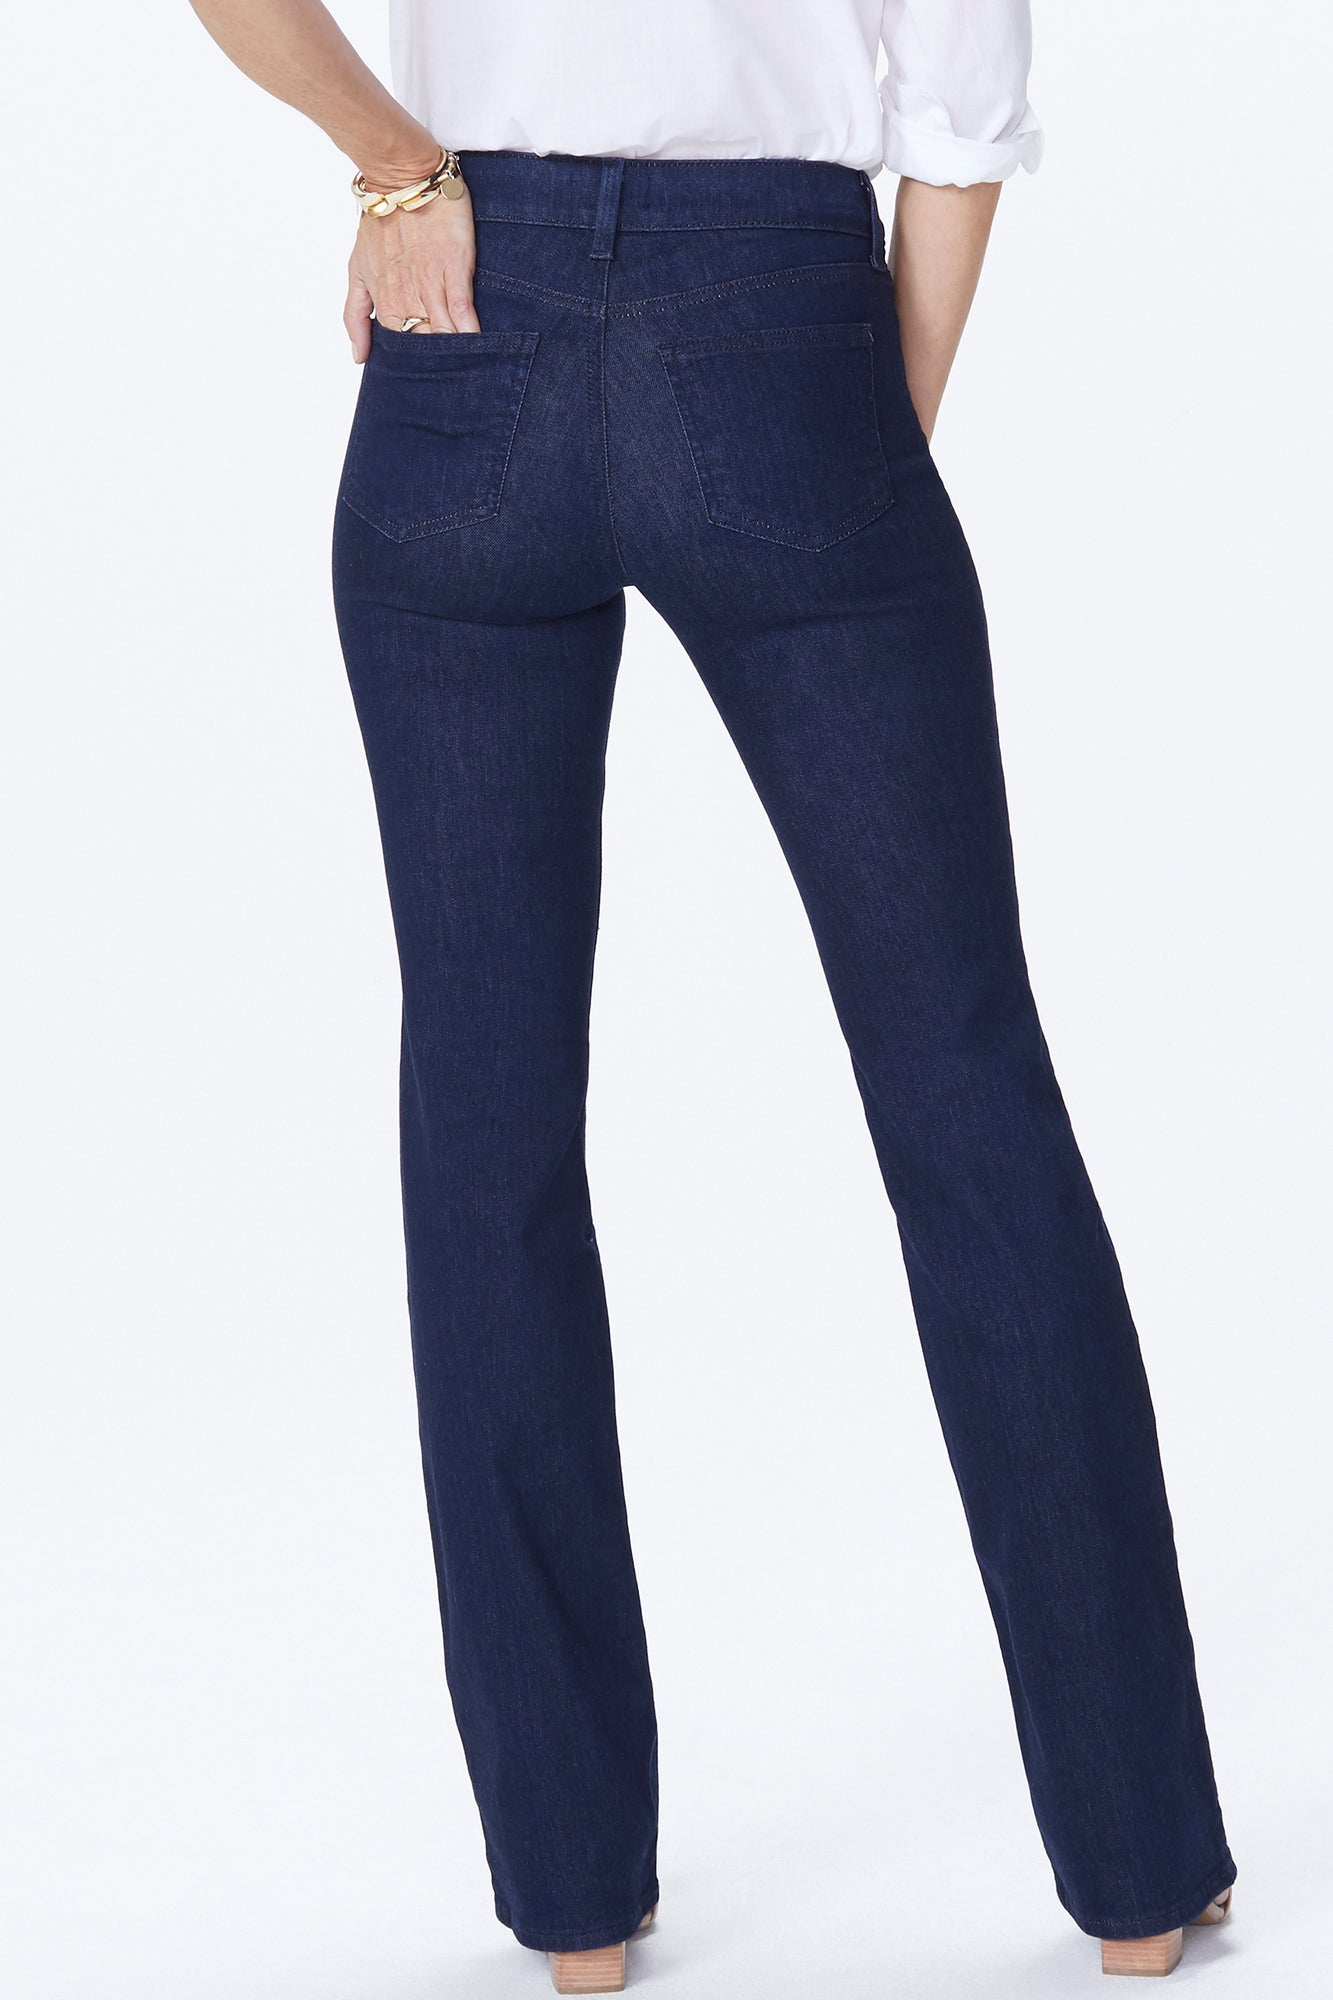 Barbara Bootcut Jeans In Tall - RINSE